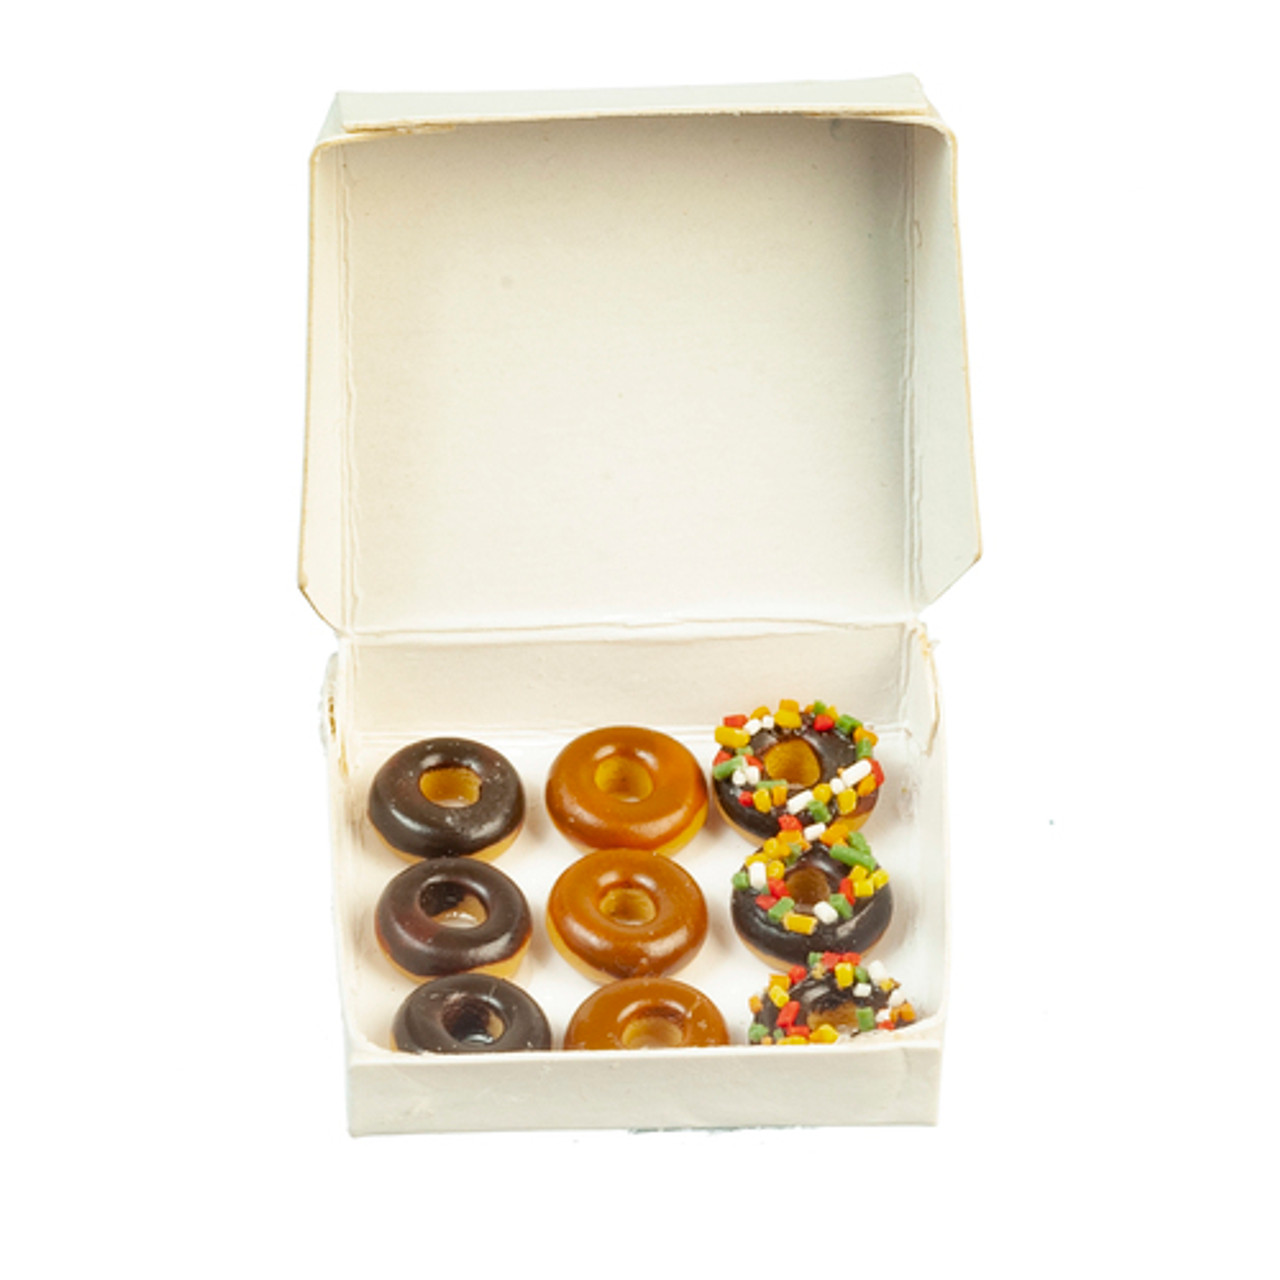 Donuts on Tray